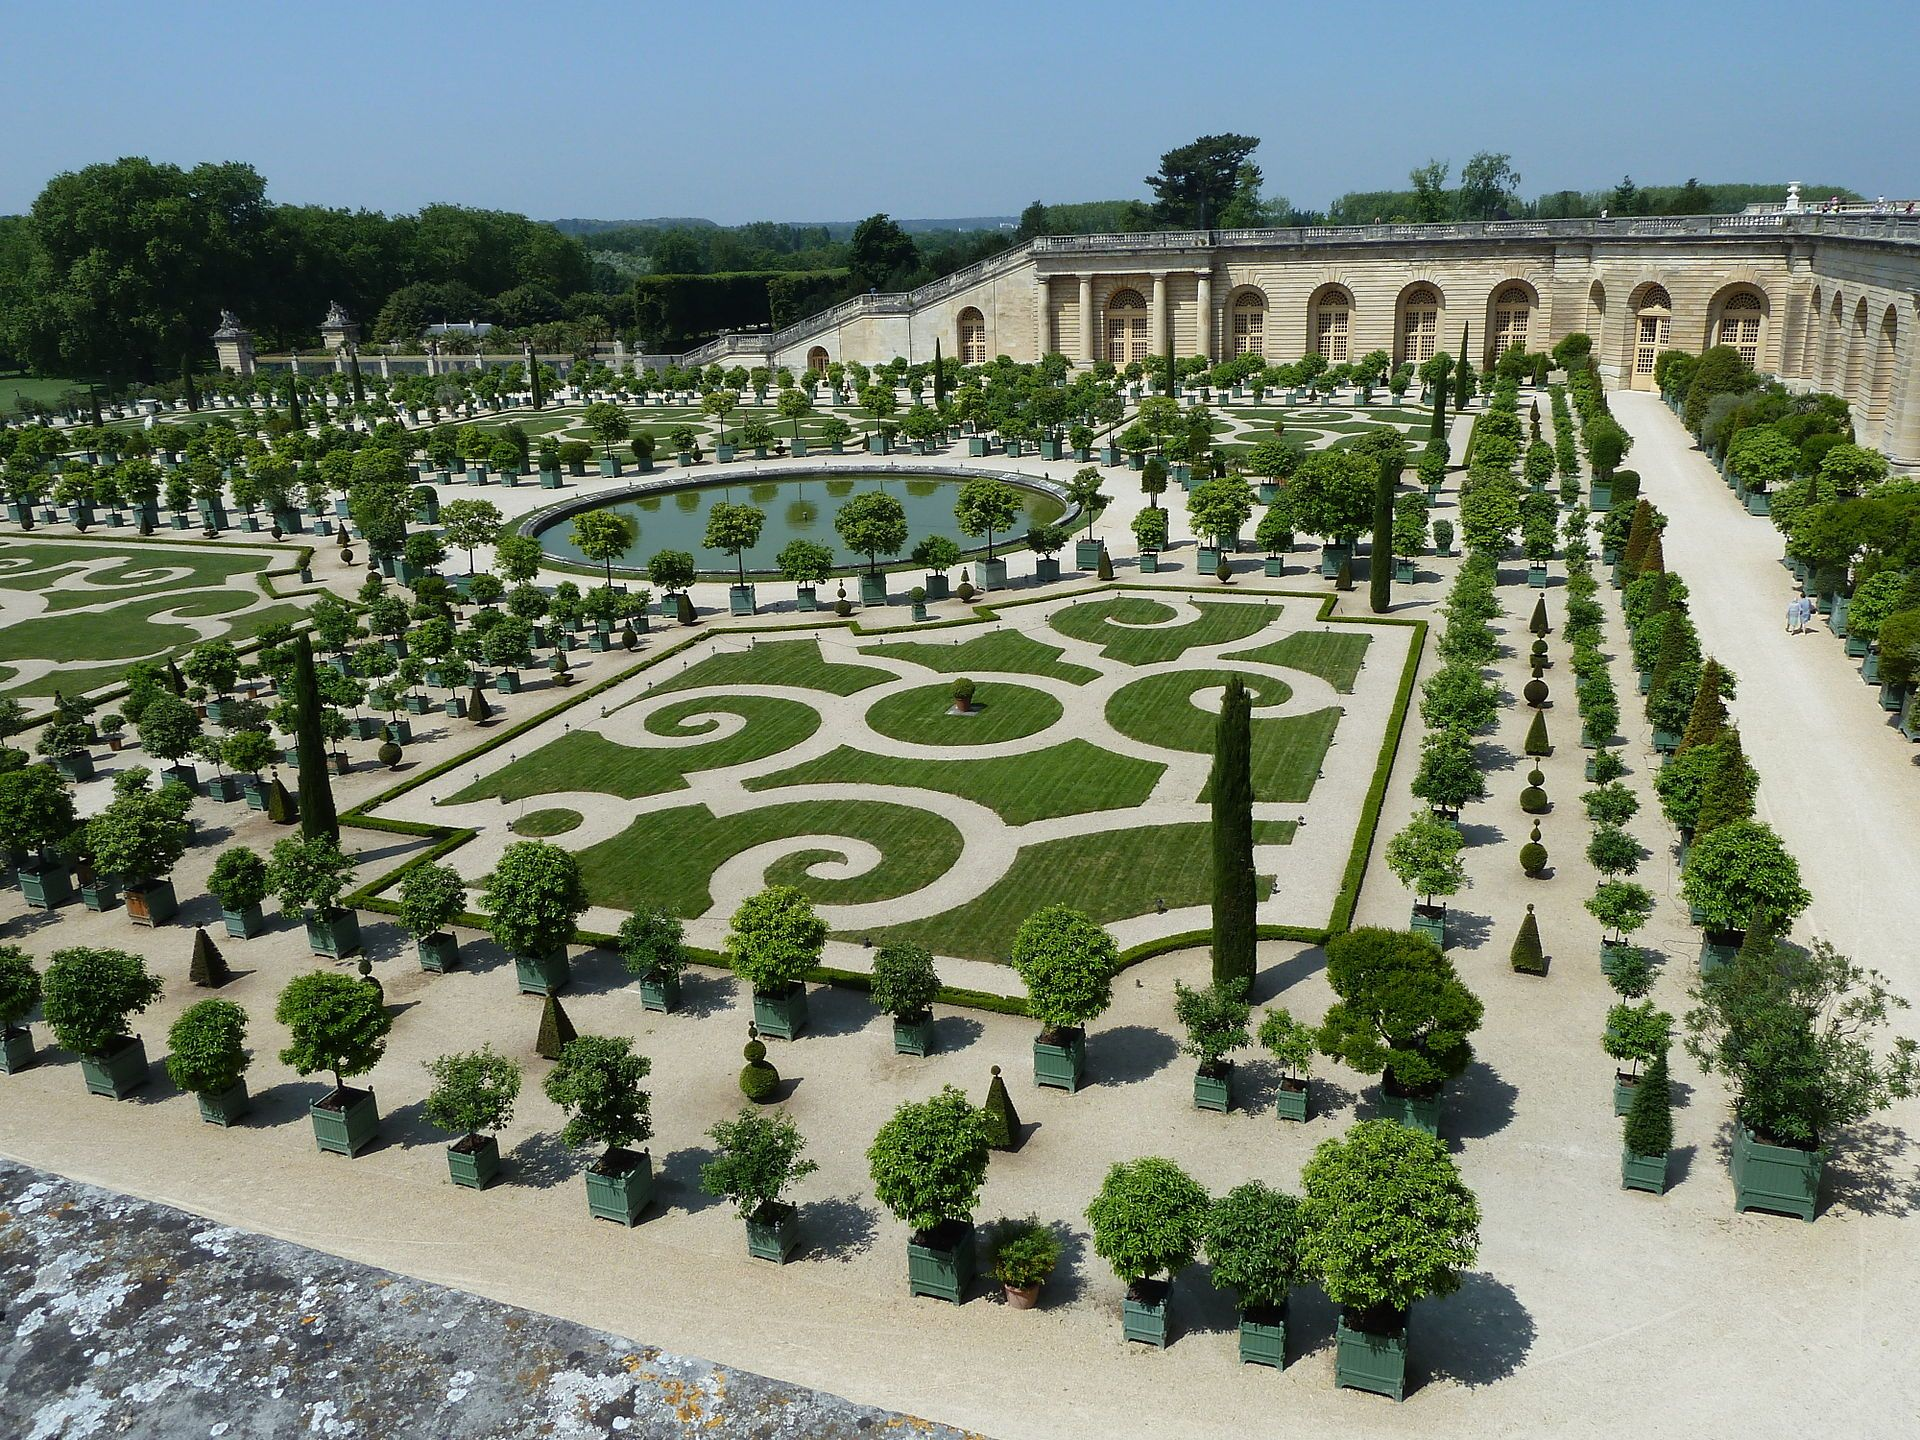 A Formal Garden In Albi France Wow Now That S Sculpture With Flowers French Garden French Formal Garden English Garden